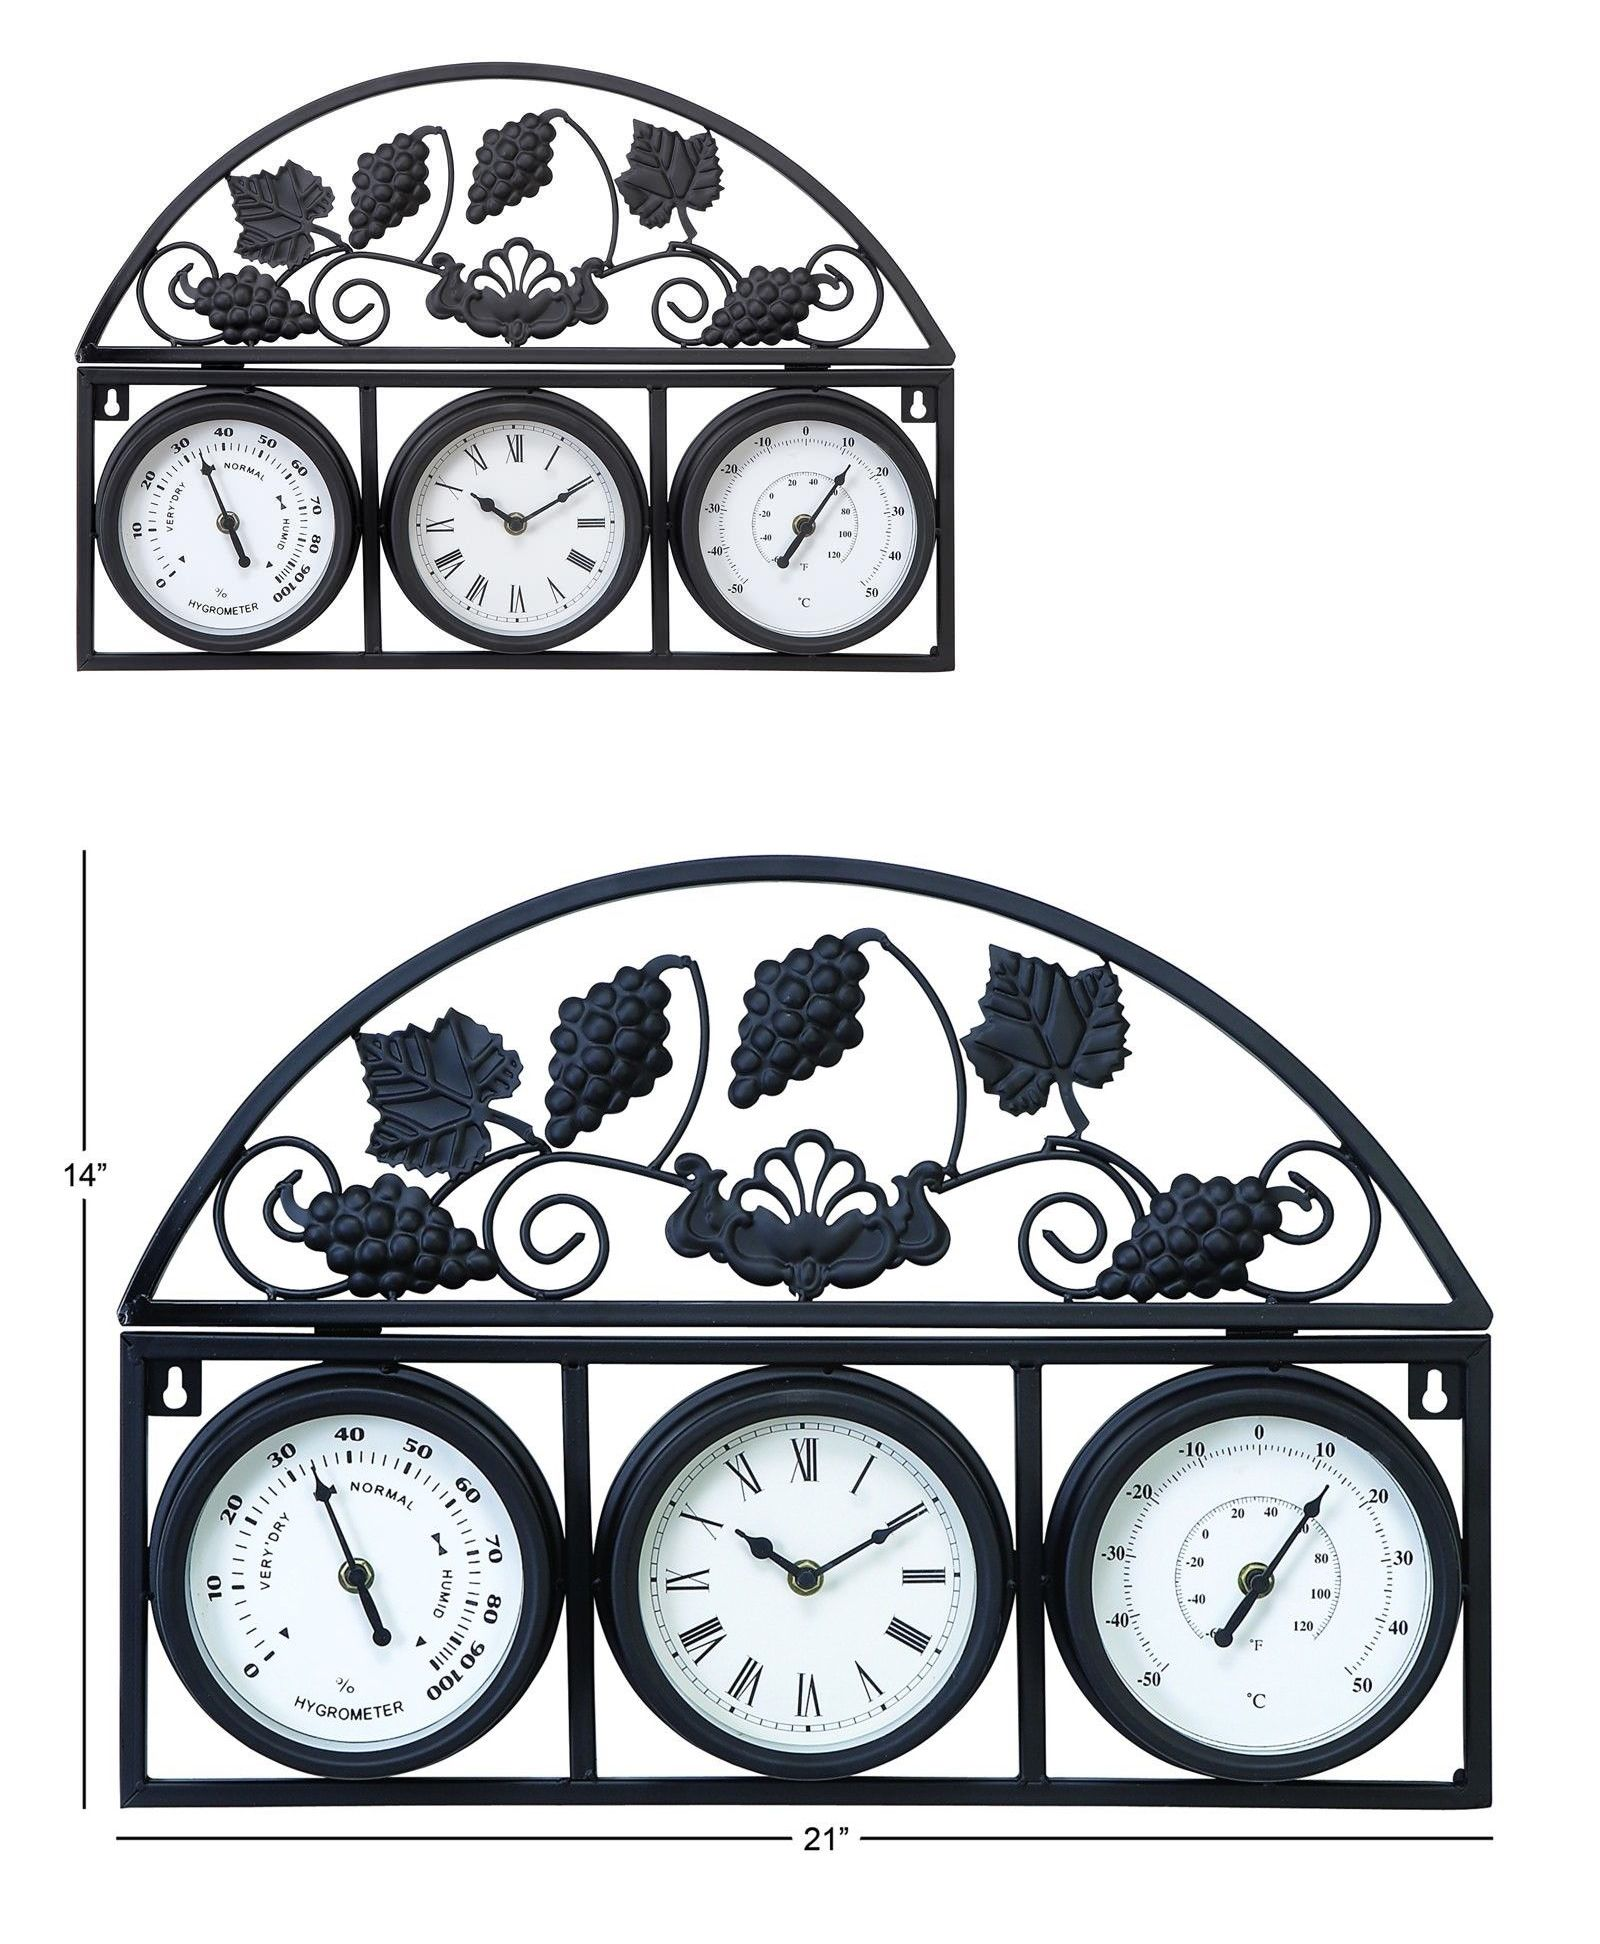 Outdoor Thermometers 75601: Metal 14 Inch Clock Outdoor Thermometer Garden  Patio Decor  U003e